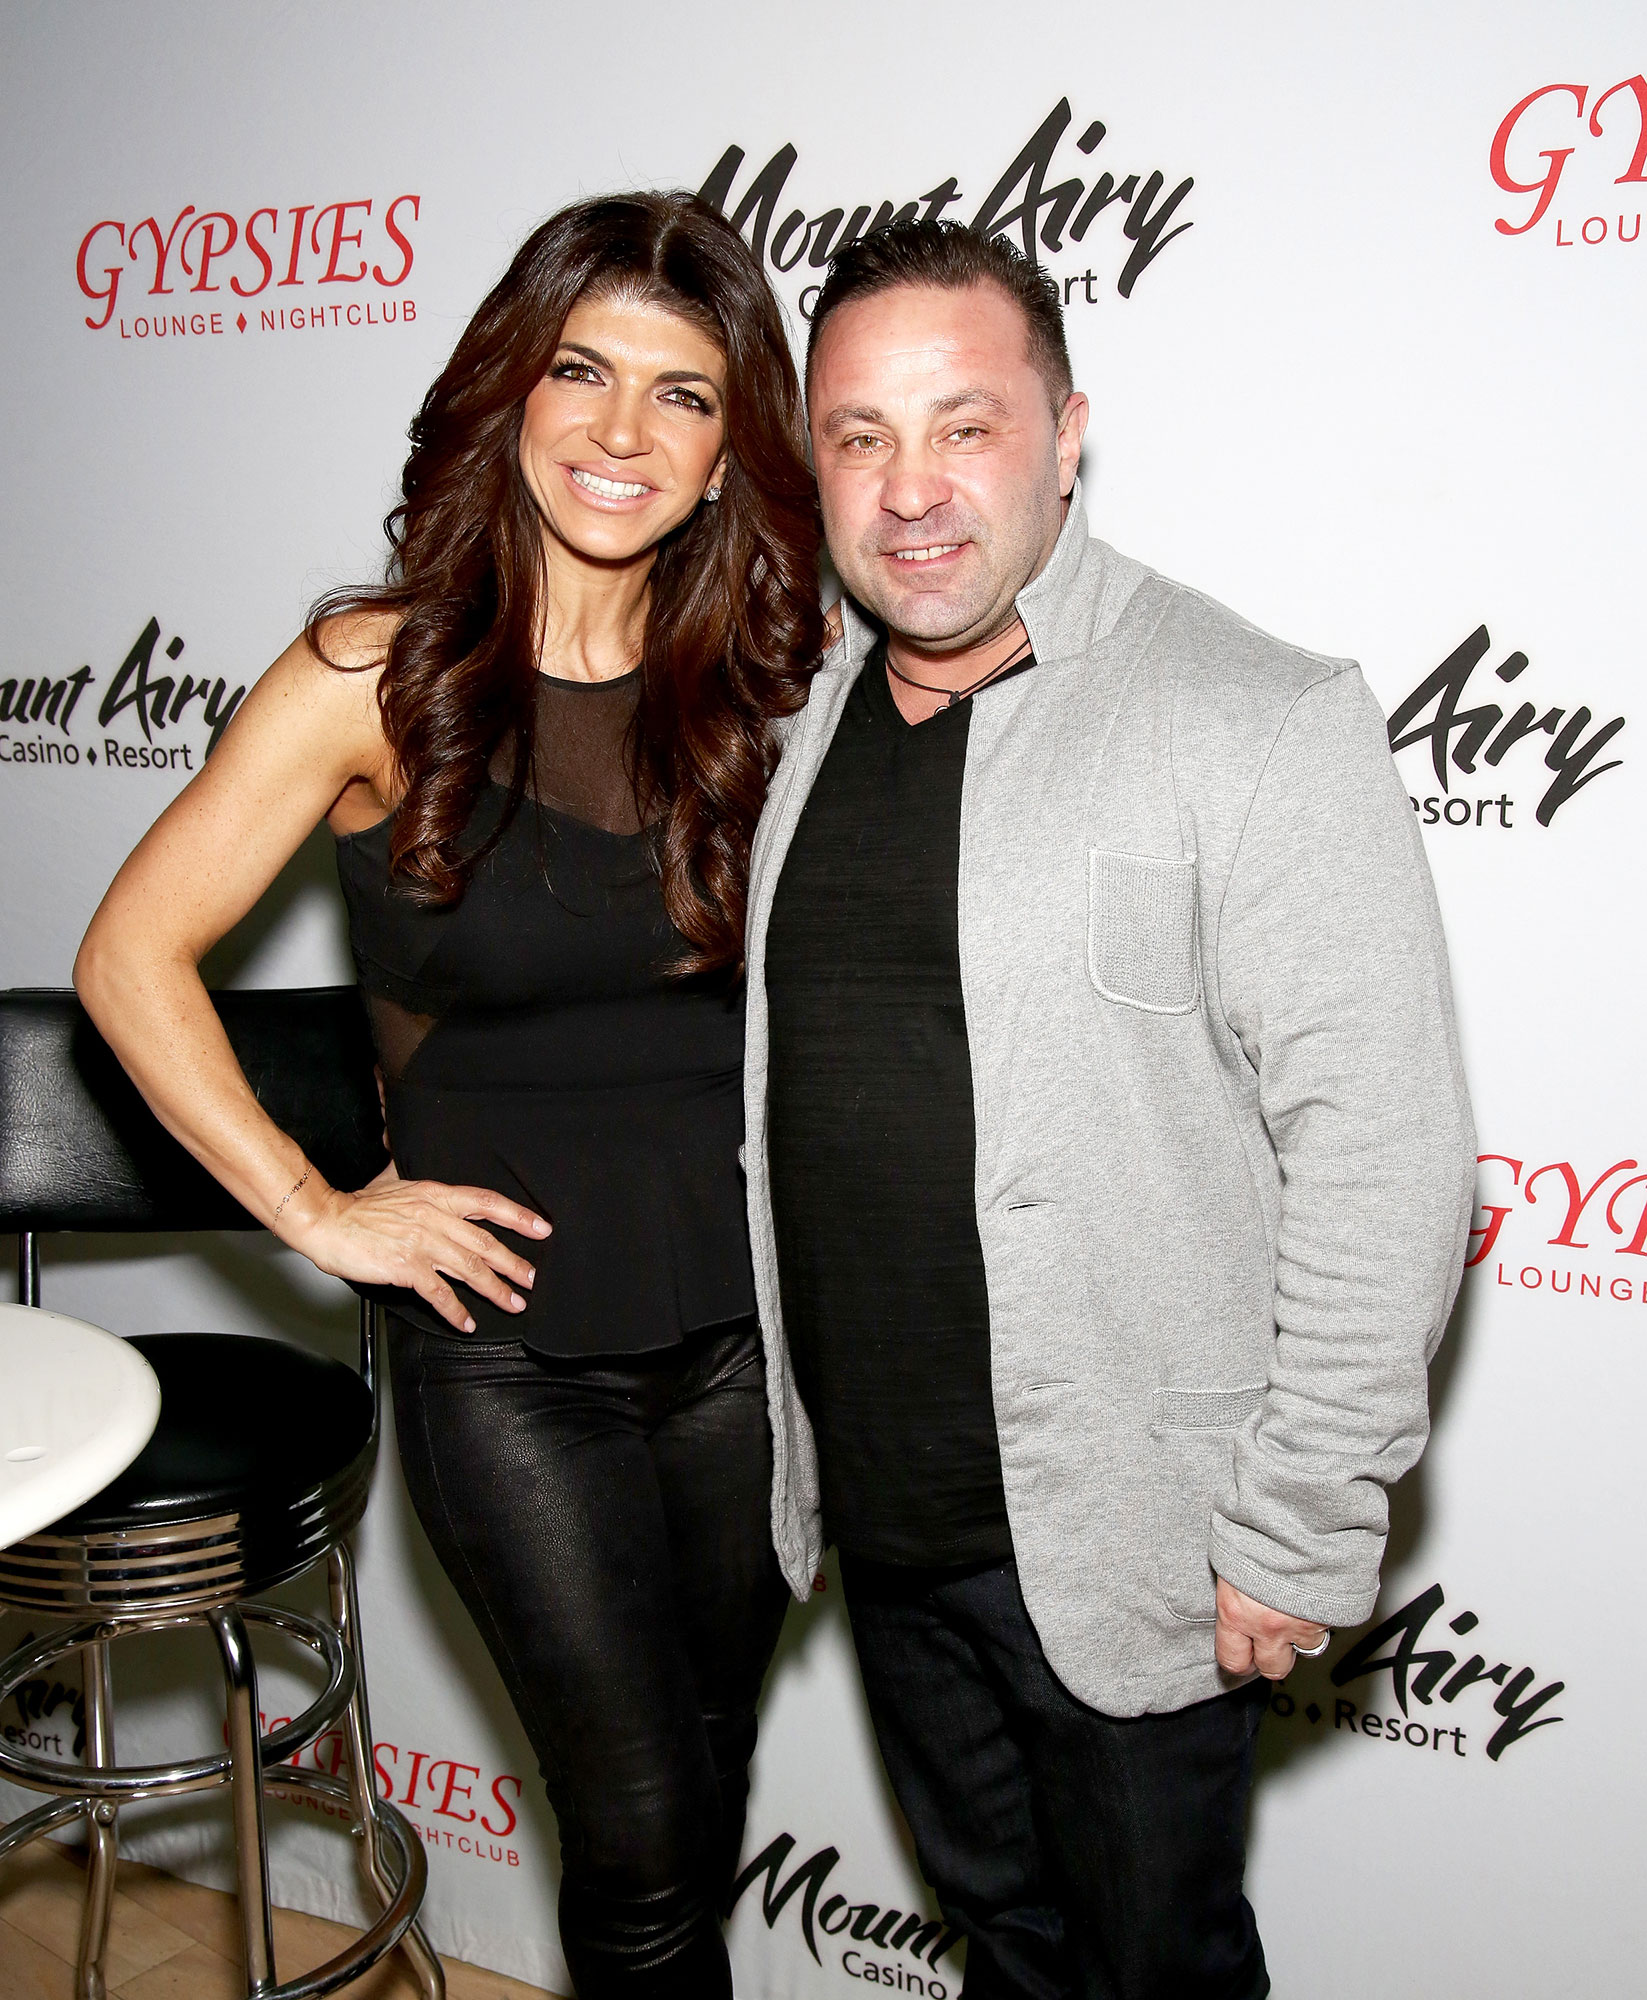 Teresa Giudice, Joe Giudice - Teresa Giudice, (L) star of The Real Houswives of New Jersey, and Joe Giudice appears at Mount Airy Resort Casino for a book signing and meet and greet on March 5, 2016 in Mount Pocono City.